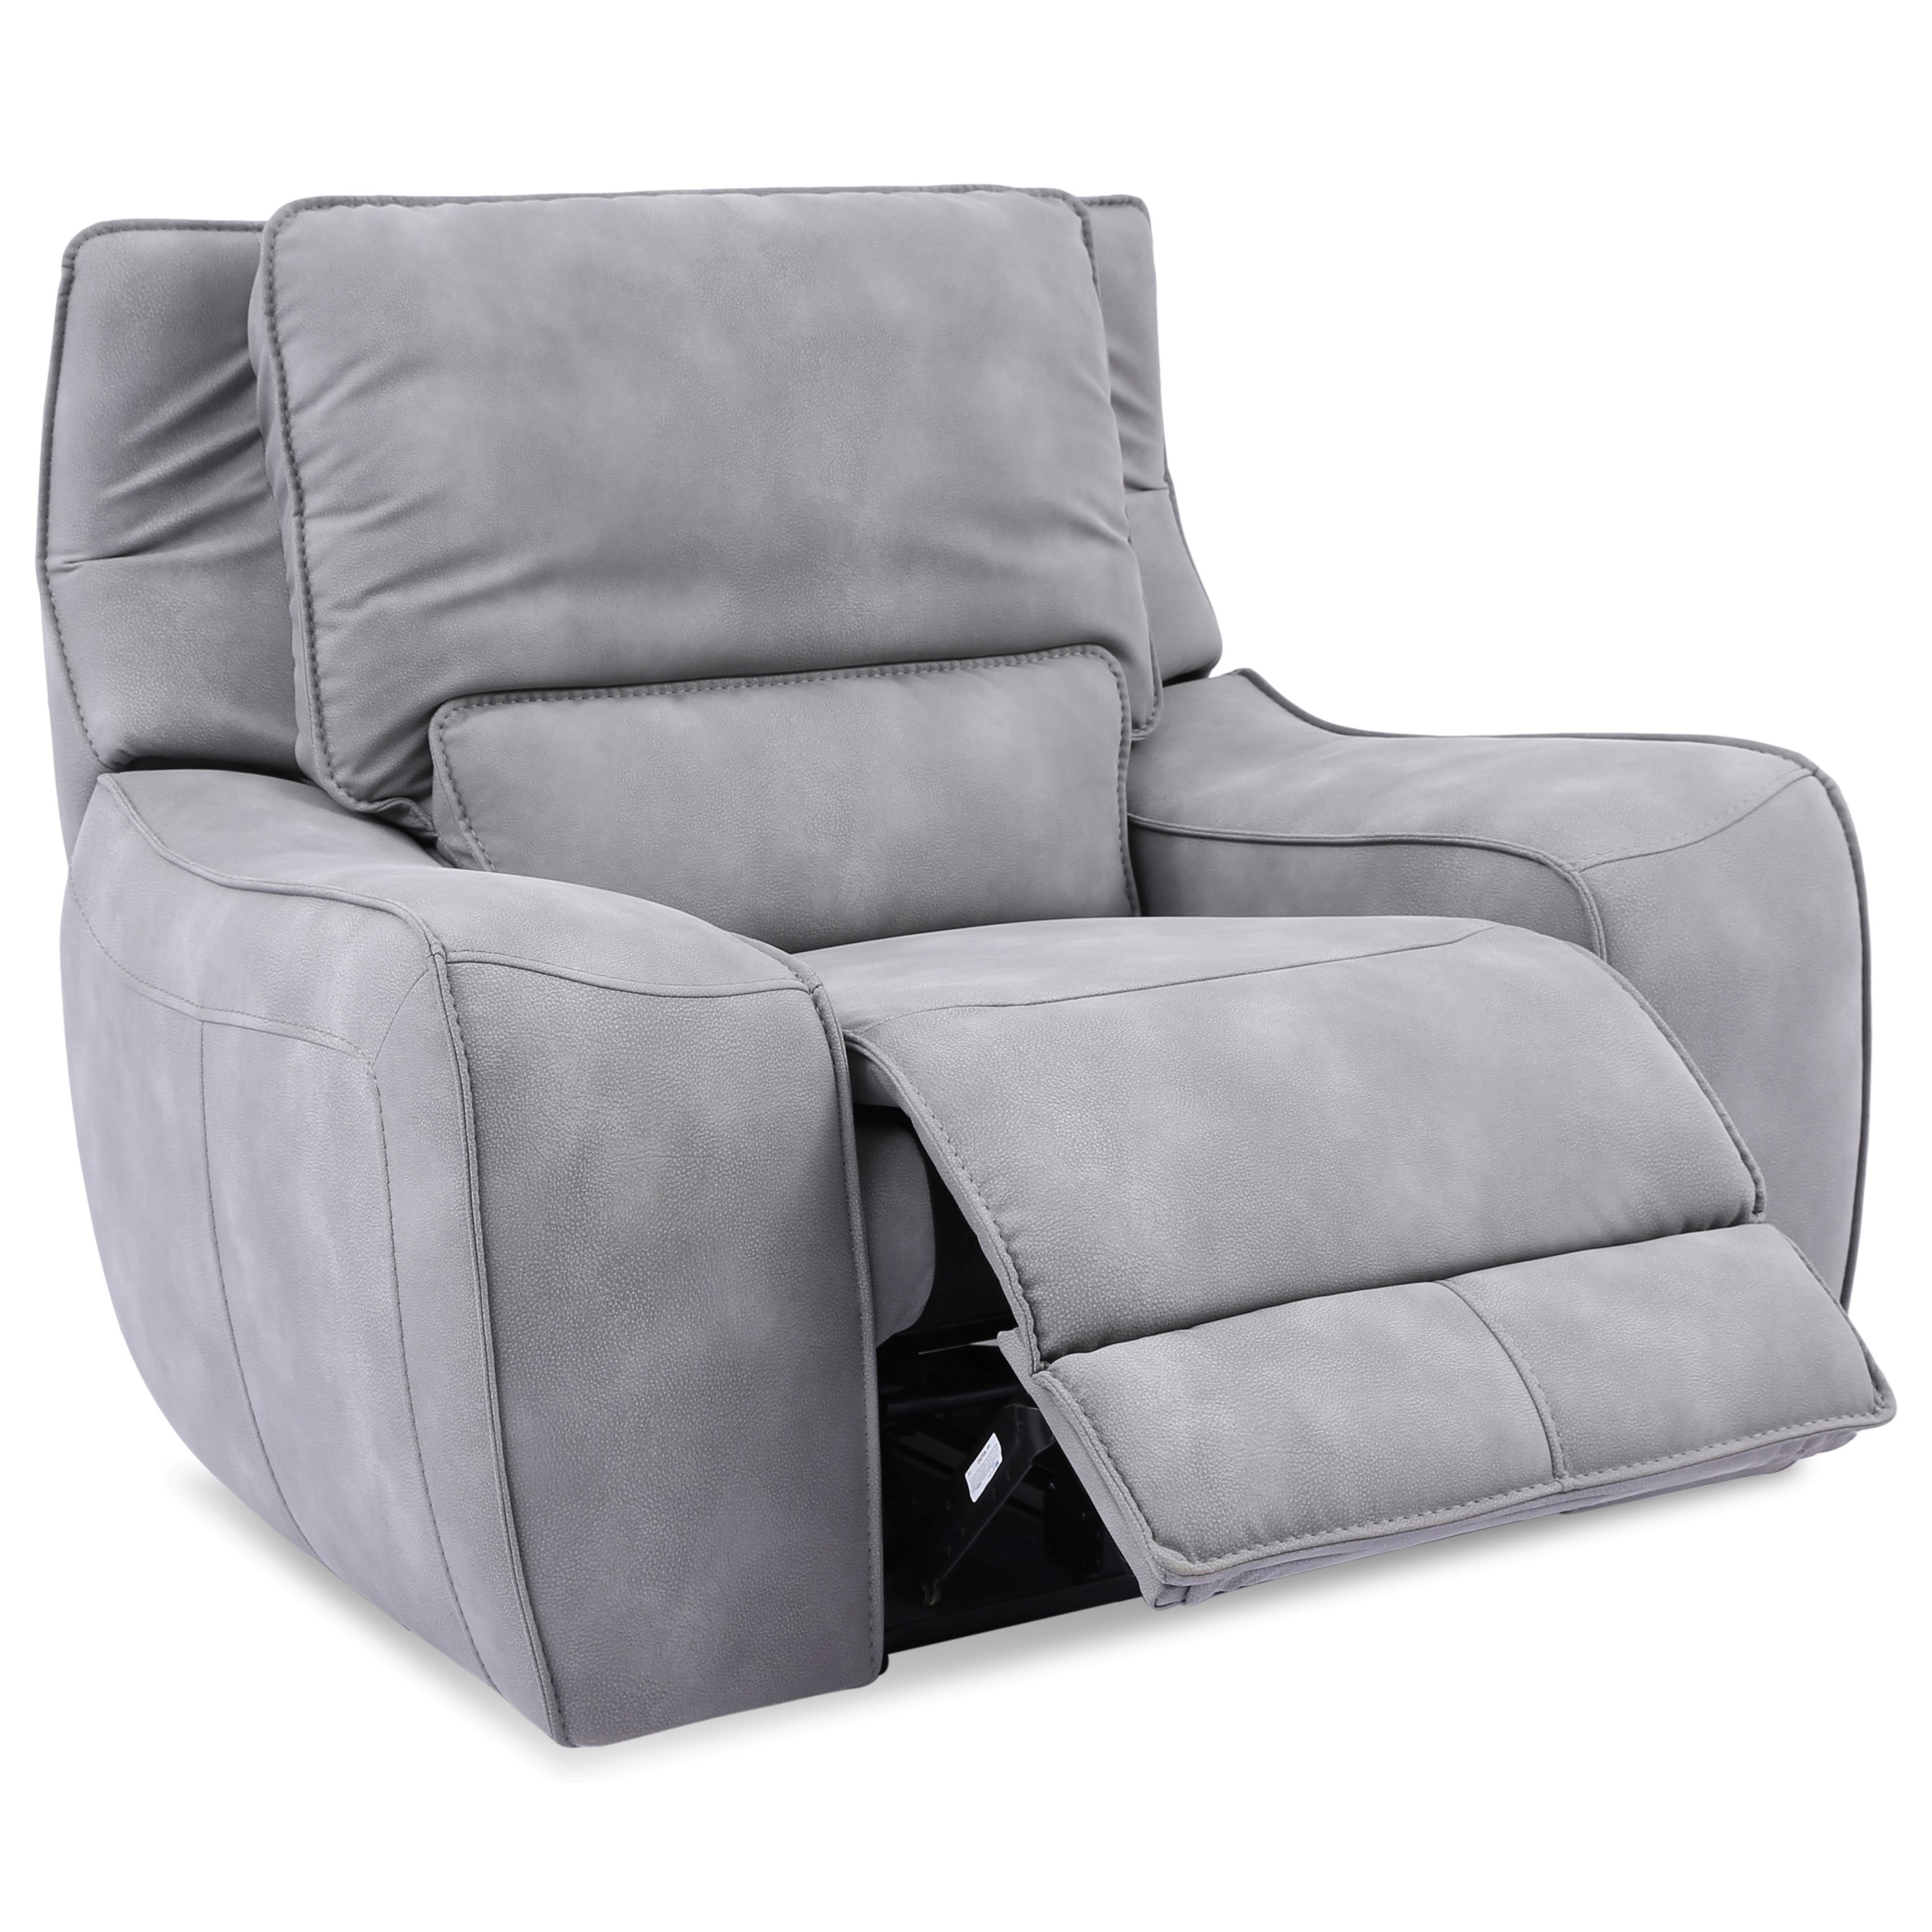 90027 Power Recliner by Cheers at Beck's Furniture